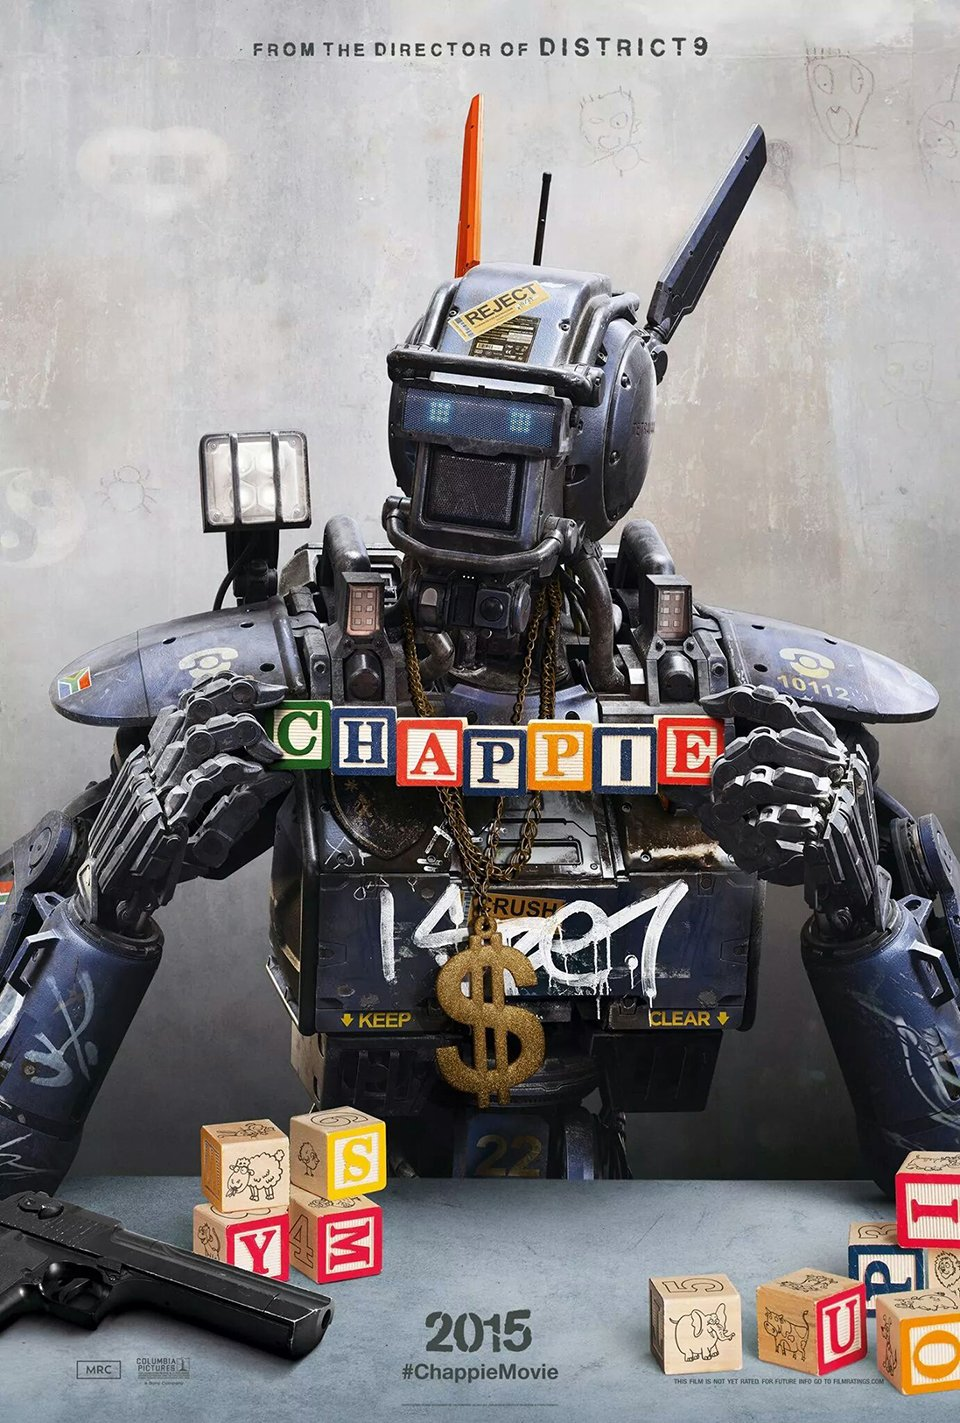 Chappie (Poster)